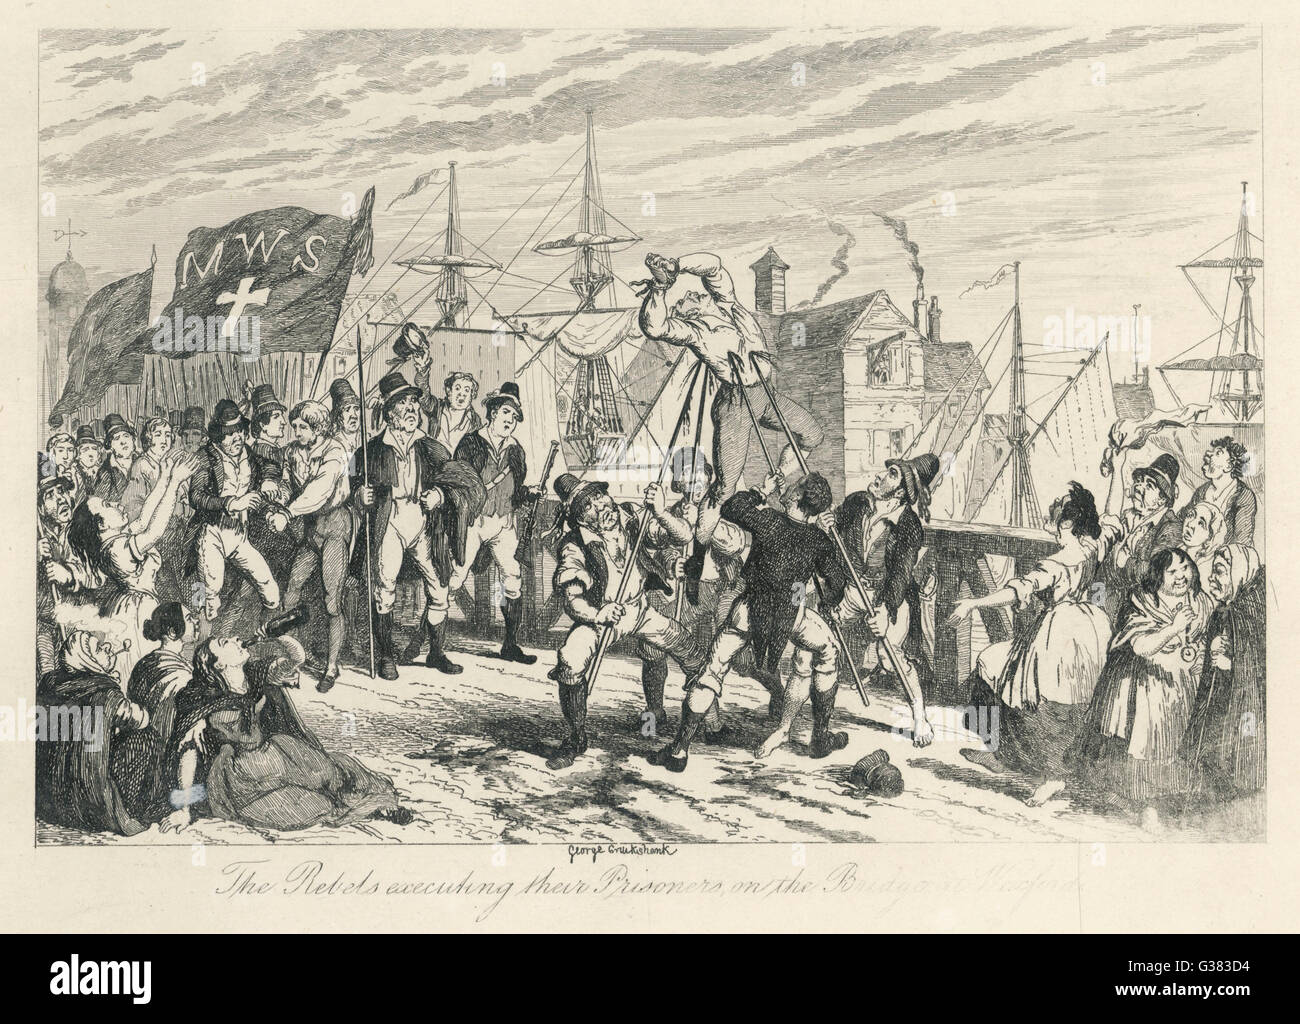 'The Rebels executing their  Prisoners on the Bridge at  Wexford'        Date: 21st June 1798 - Stock Image